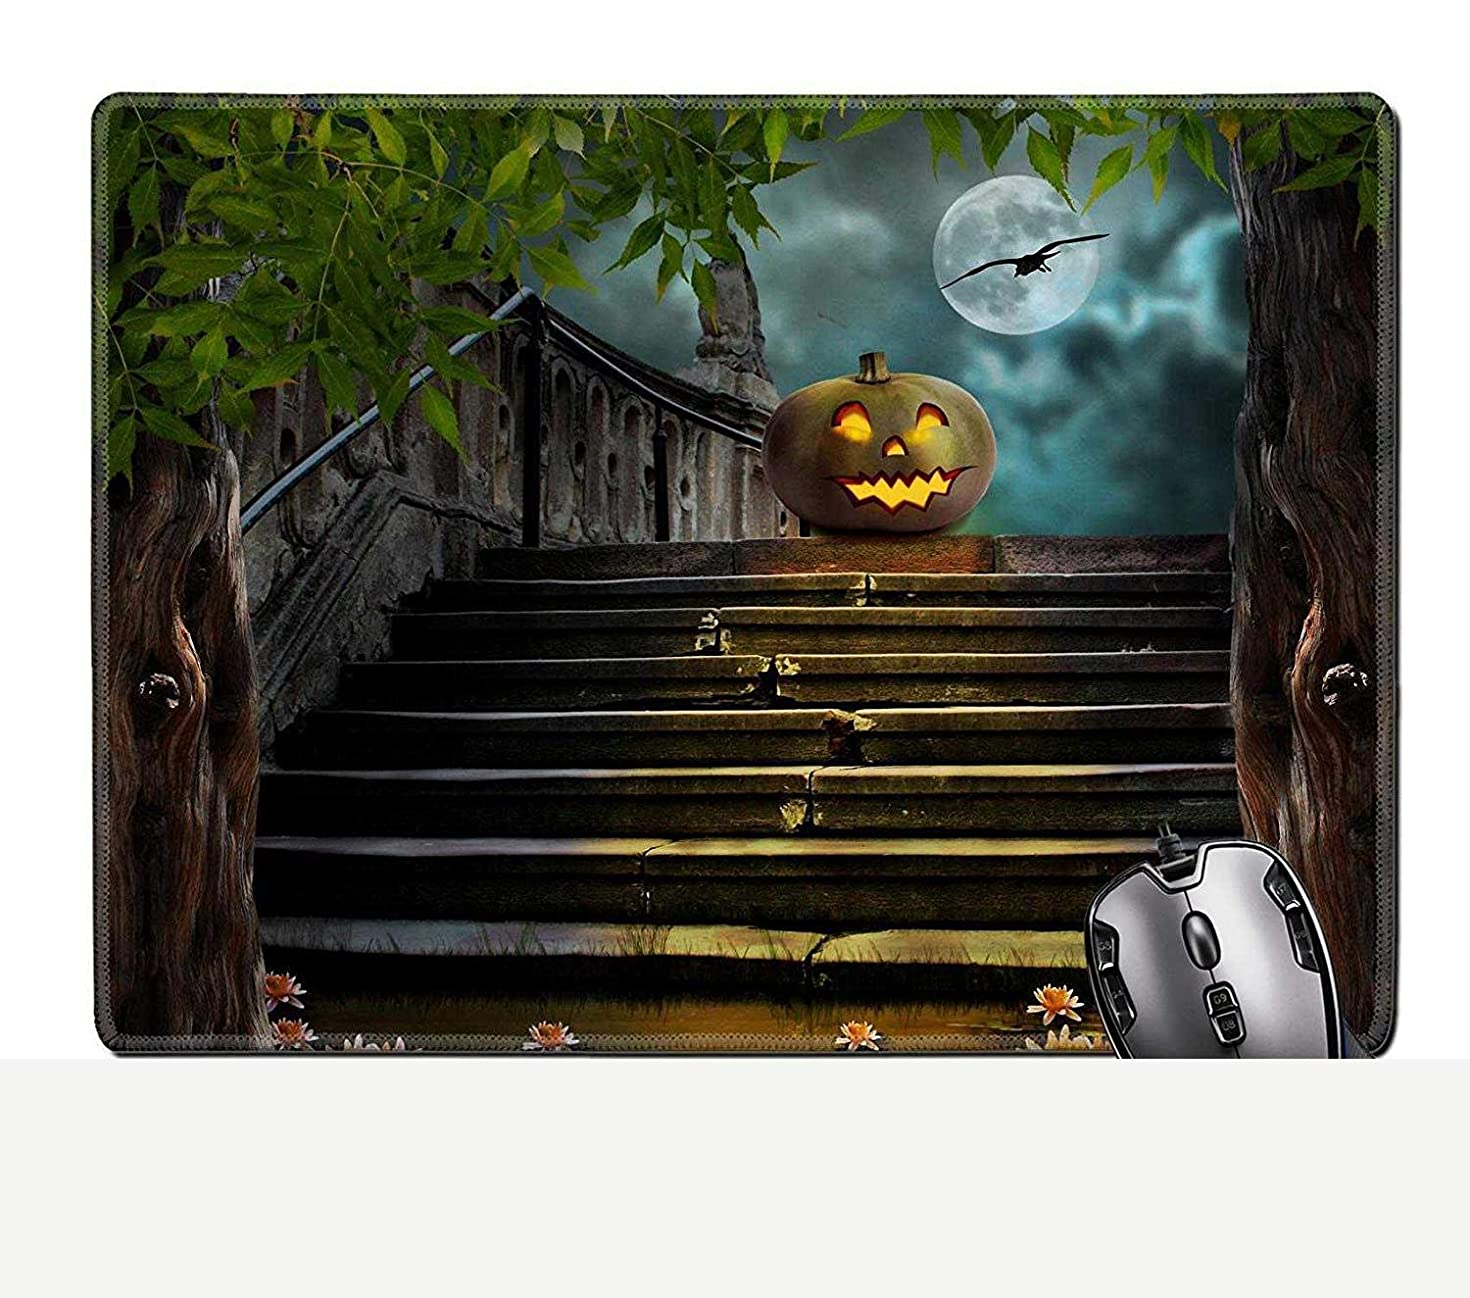 BGLKCS Halloween Pumpkins in Yard of of Old Stone Staircase Night in Bright Moonlight Image Stain Resistance Kit Kitchen Table Top De